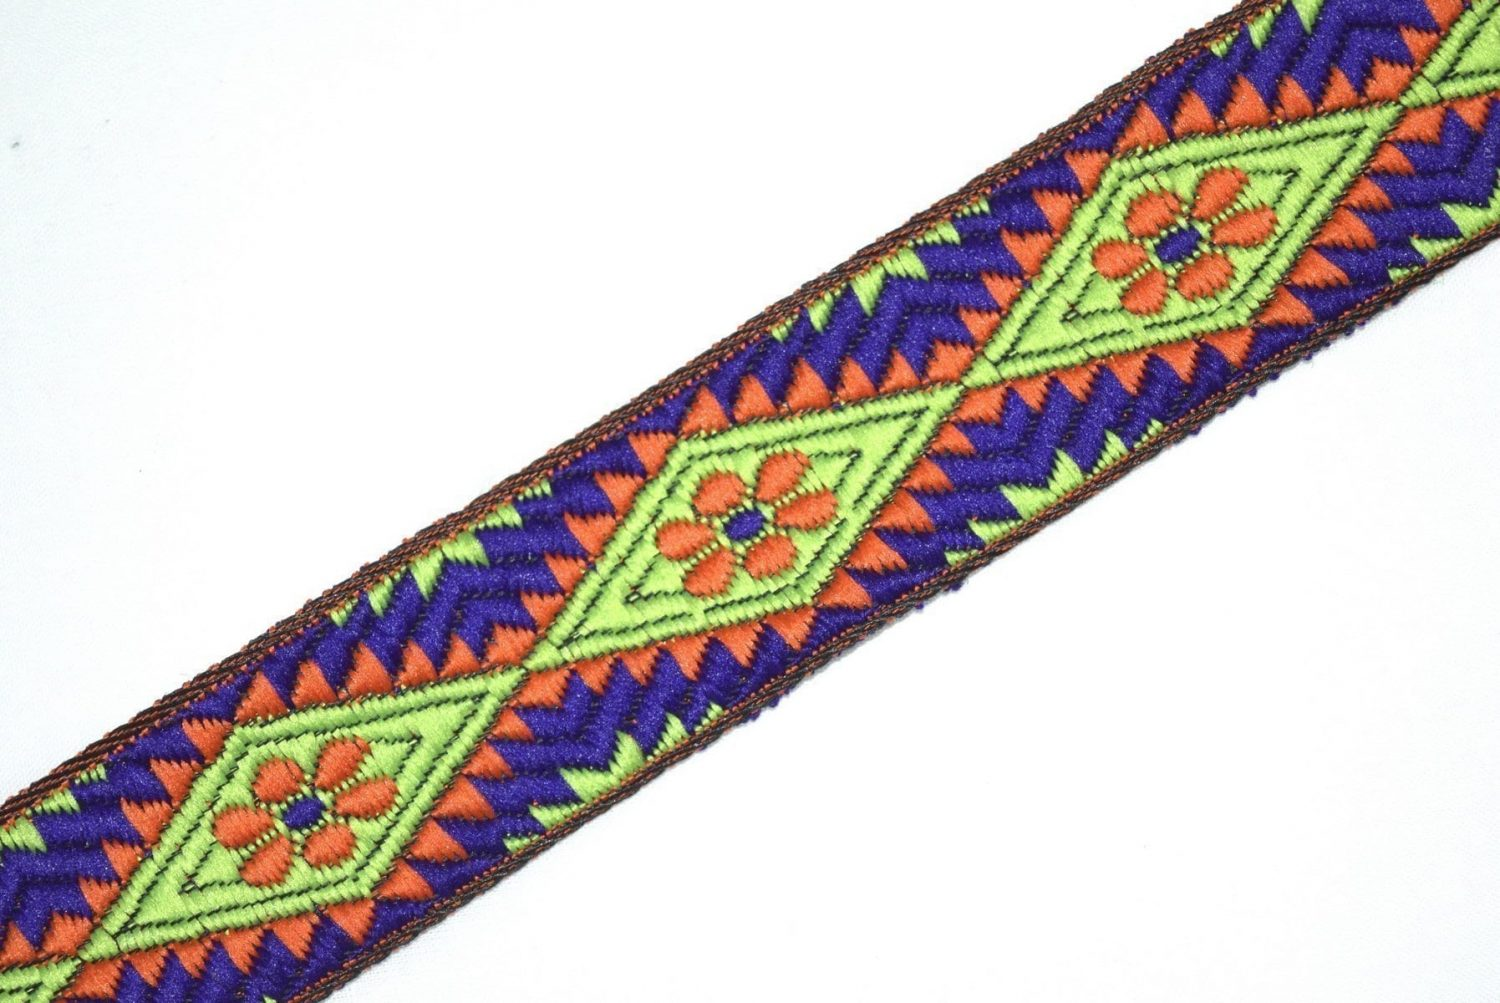 Multicolor Embroidered design Kinari Lace LC057 width 1.25 inch Roll of 9 meters 1